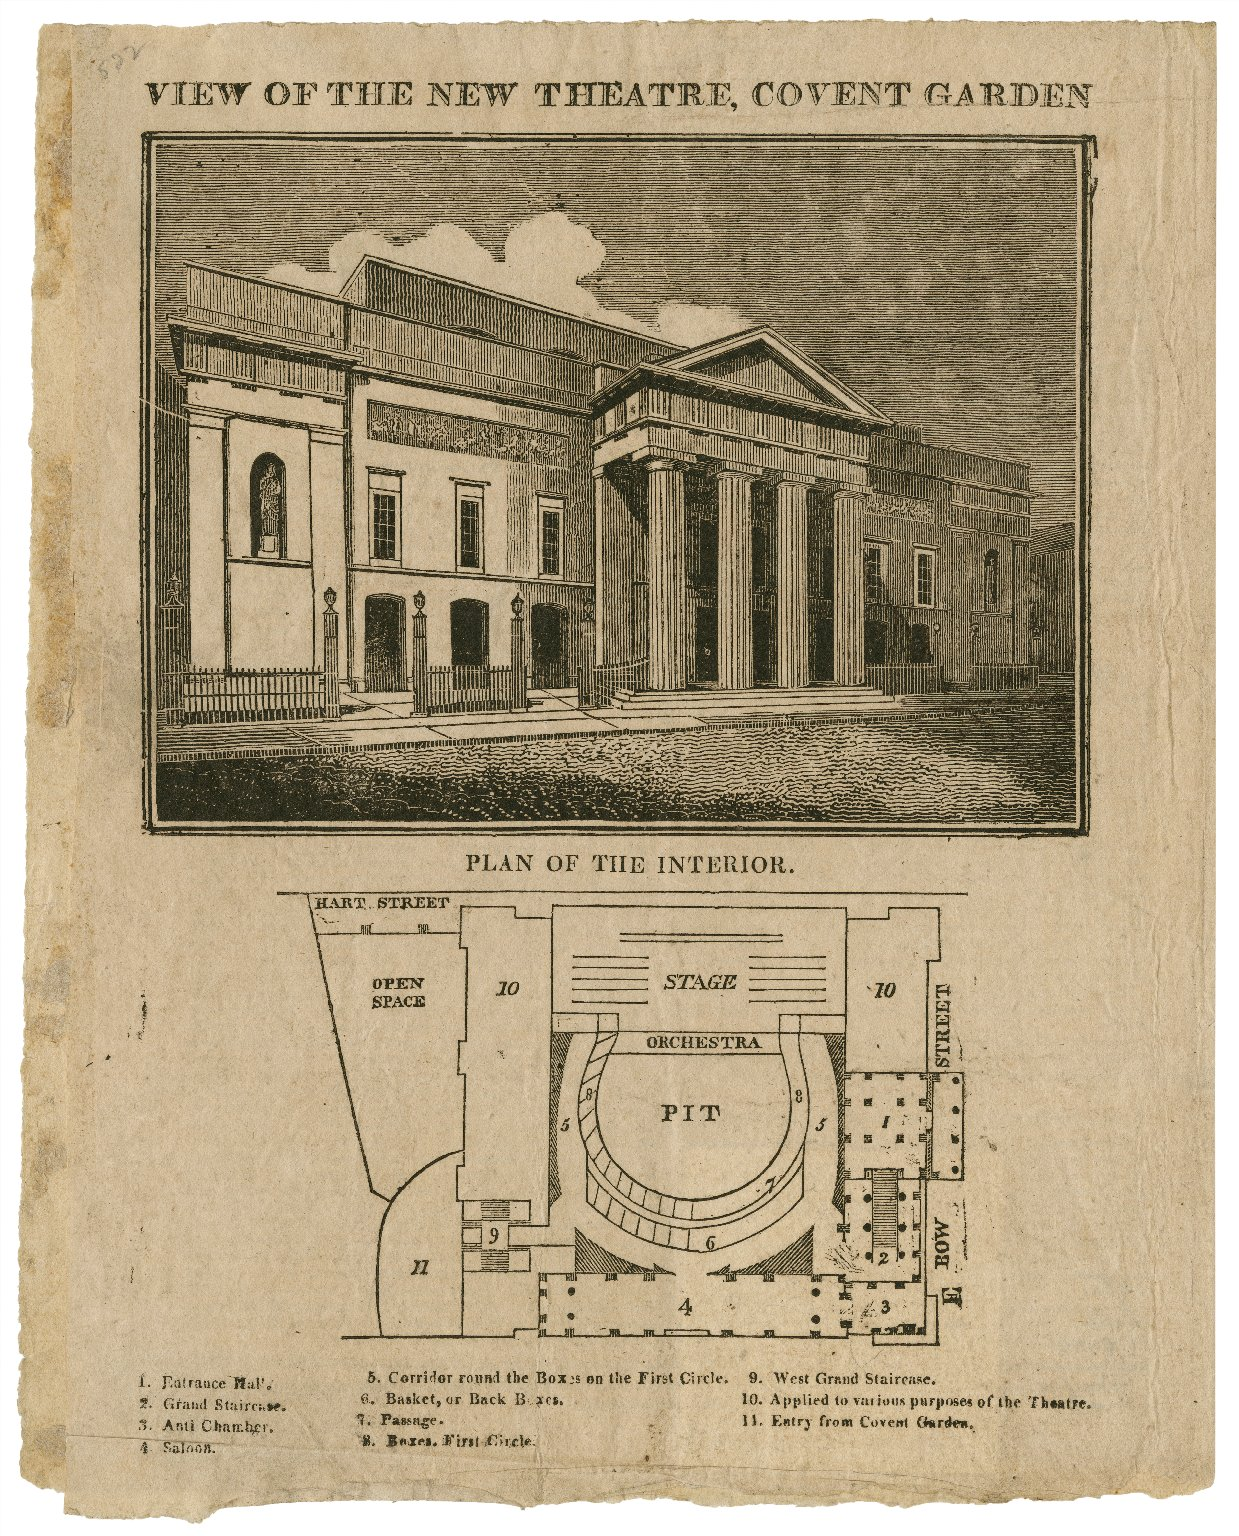 <b>Covent Garden, circa 1809</b>     	</br>Exterior and plan of the interior of the new Covent Garden Theatre after it burned down in September 1808, London, c.a. 1809</br><br/><b>Source: </b><i>View of the new theatre, Covent Garden [and] plan of the interior (Call number: ART File L847t1 C1 no.7), [1809?], Folger Digital Image Collection, University of Cincinnati Libraries Digital Collections, University of Cincinnati, http://digproj.libraries.uc.edu:8180/luna/servlet/s/mpd0q3</i>